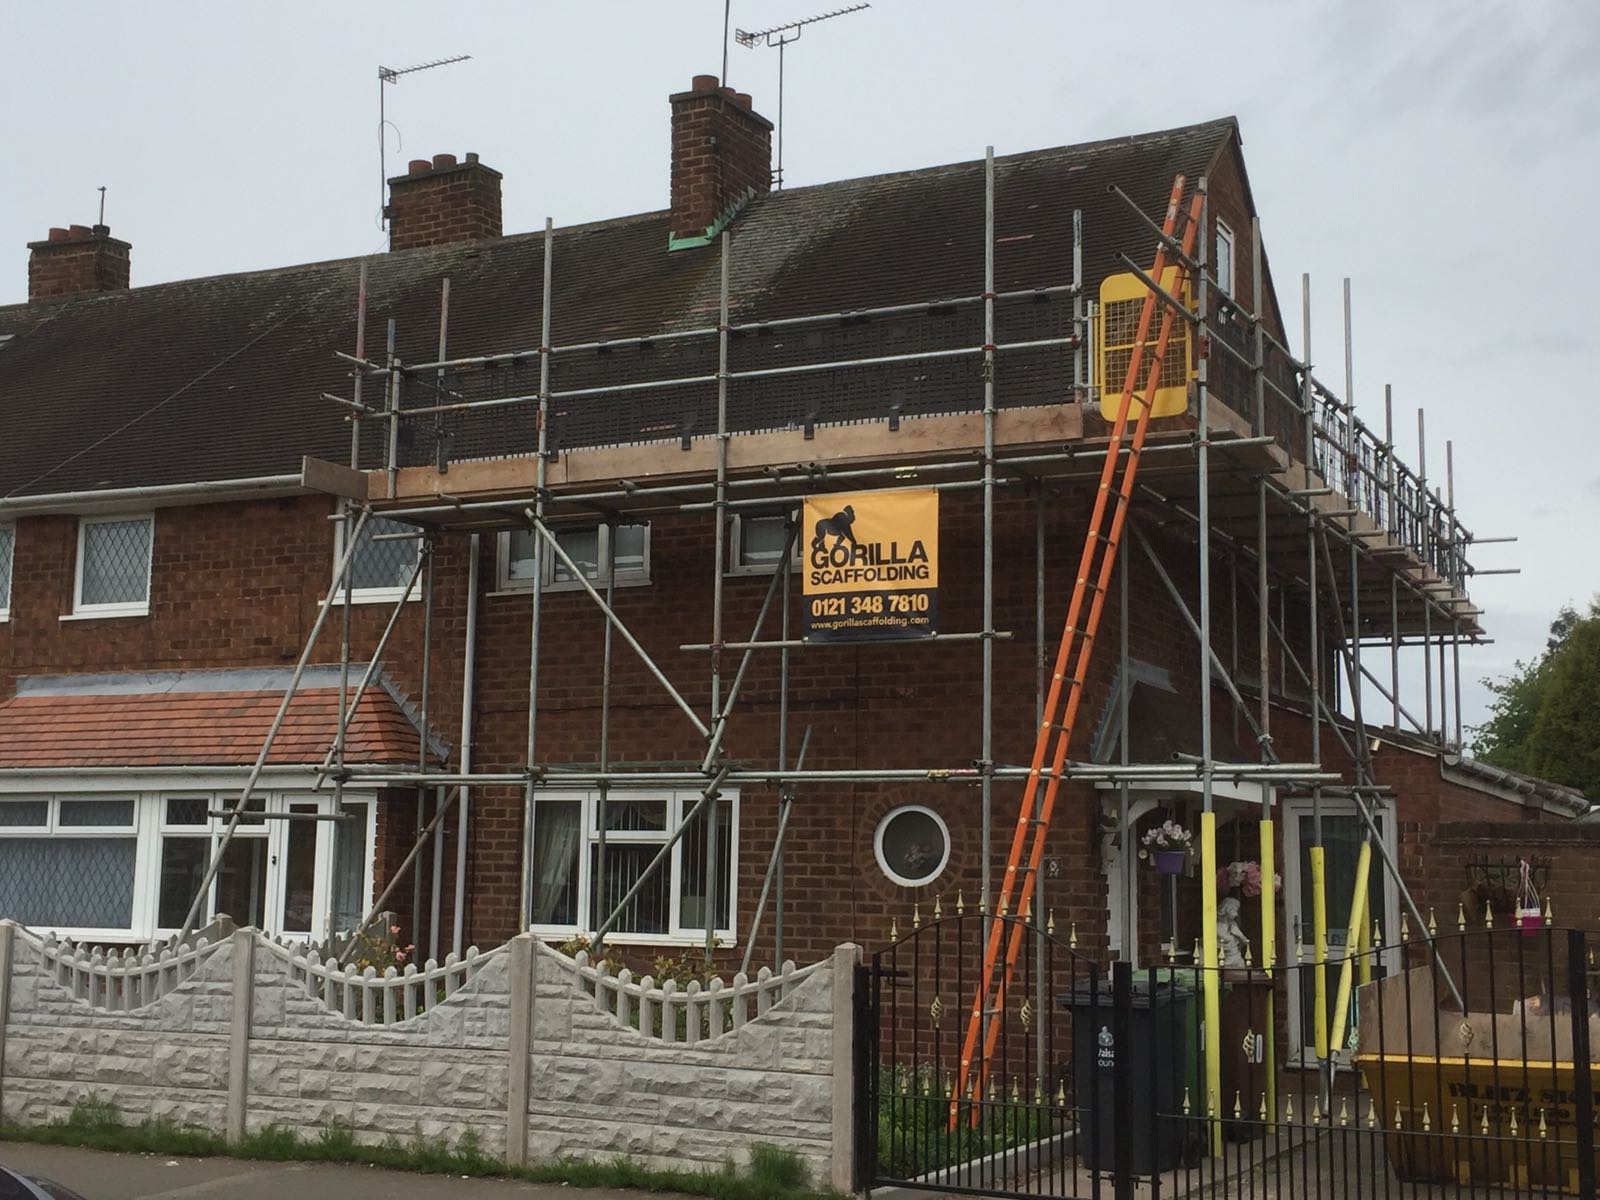 Domestic scaffolding on a house by Gorilla Scaffolding